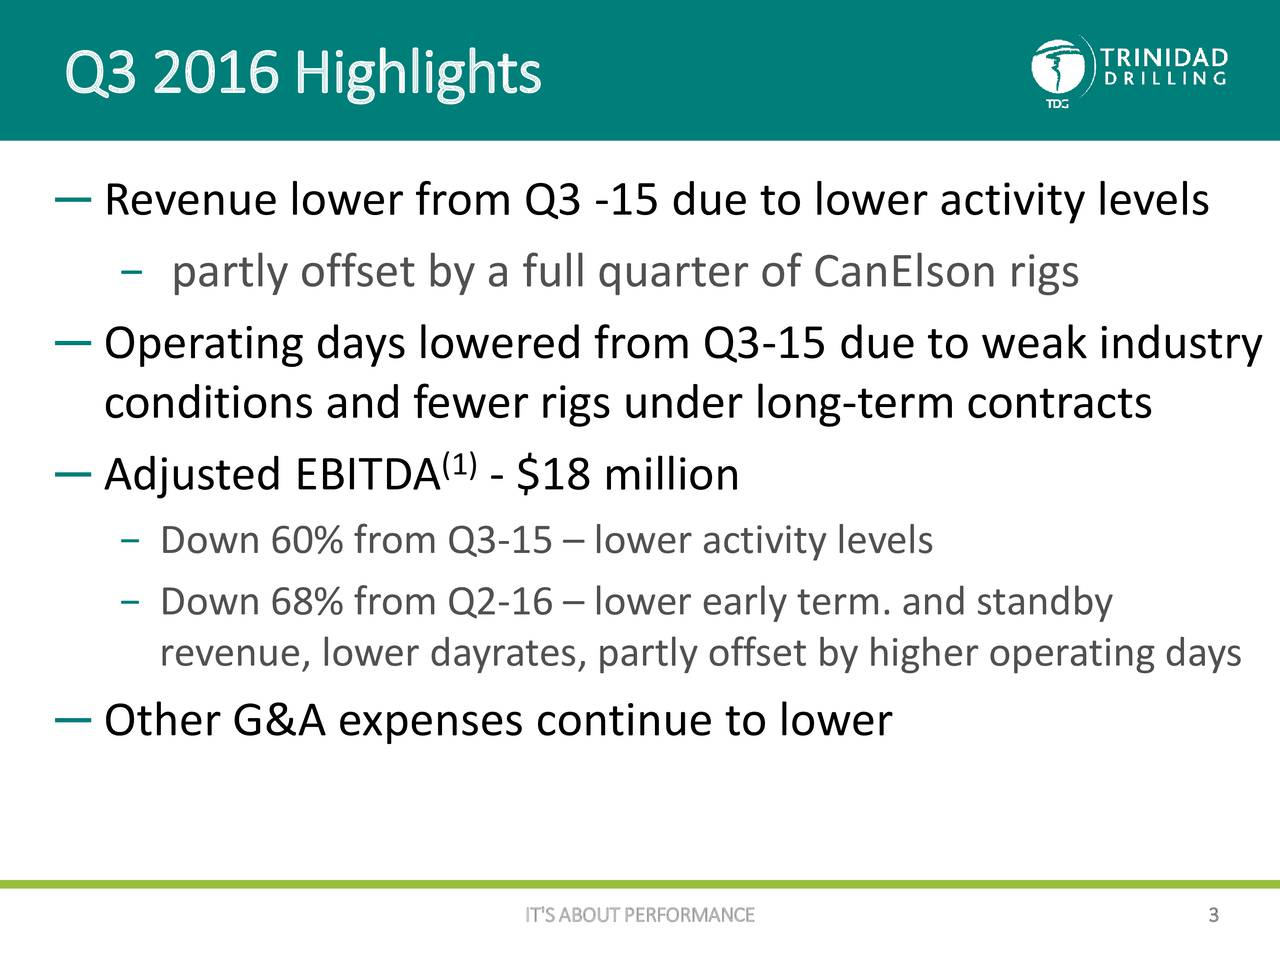 Revenue lower from Q3 -15 due to lower activity levels partly offset by a full quarter of CanElson rigs Operating days lowered from Q3-15 due to weak industry conditions and fewer rigs under long-term contracts Adjusted EBITDA (1- $18 million Down 60% from Q3-15  lower activity levels Down 68% from Q2-16  lower early term. and standby revenue, lower dayrates, partly offset by higher operating days Other G&A expenses continue to lower IT'S ABOUT PERFORMANCE 3